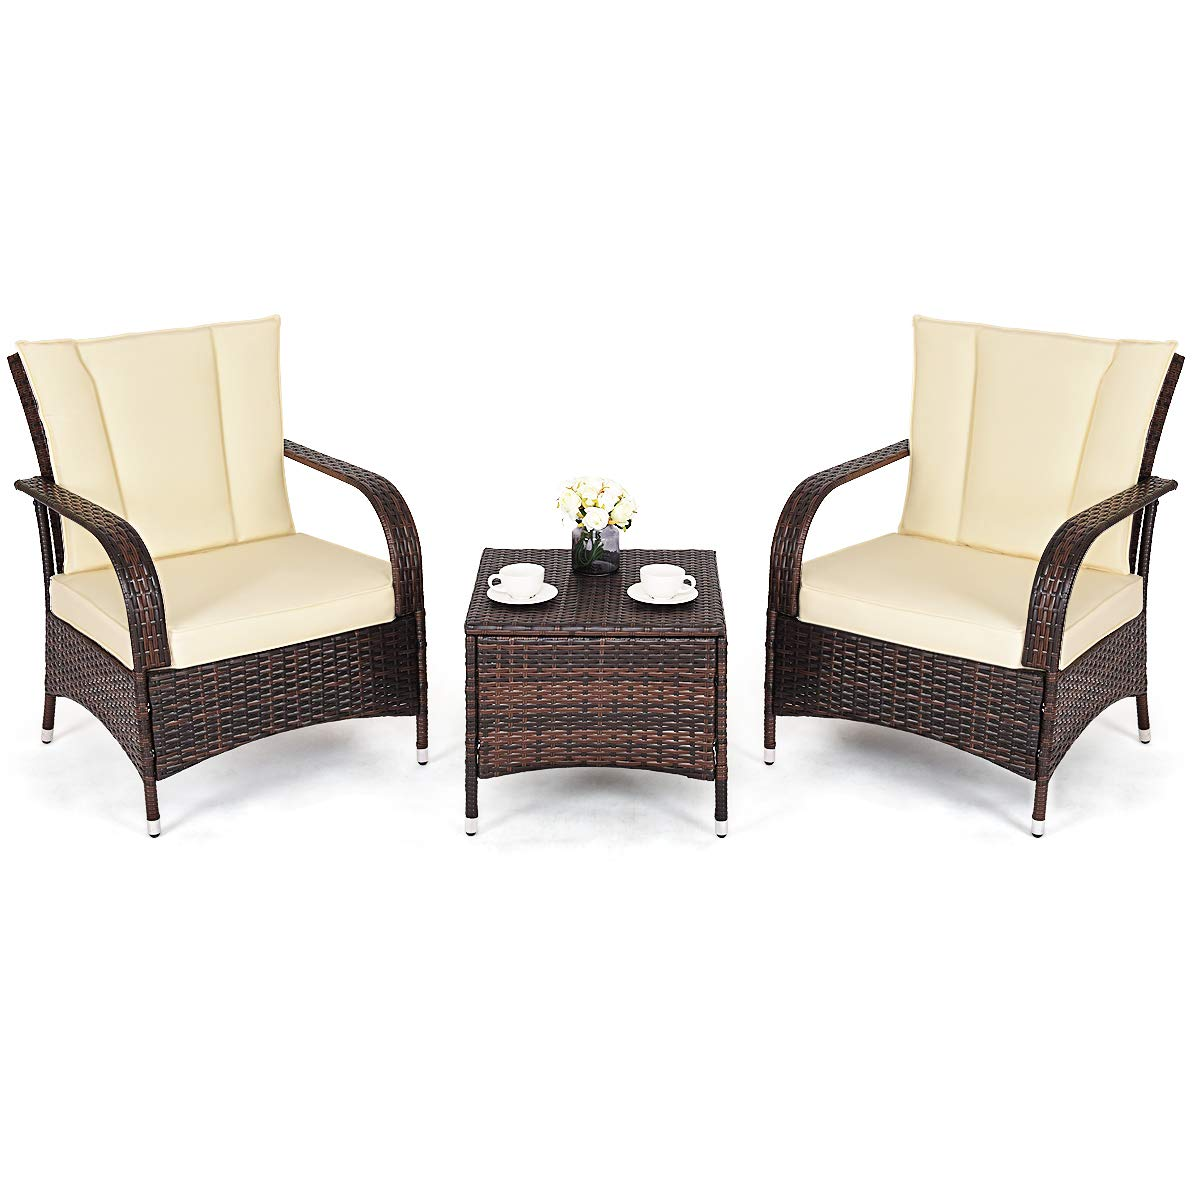 Tangkula 3 Piece Patio Furniture Set Wicker Rattan Outdoor Patio Conversation Set with 2 Cushioned Chairs End Table Backyard Garden Lawn Chat Set Chill Time Modern Outdoor Furniture Beige